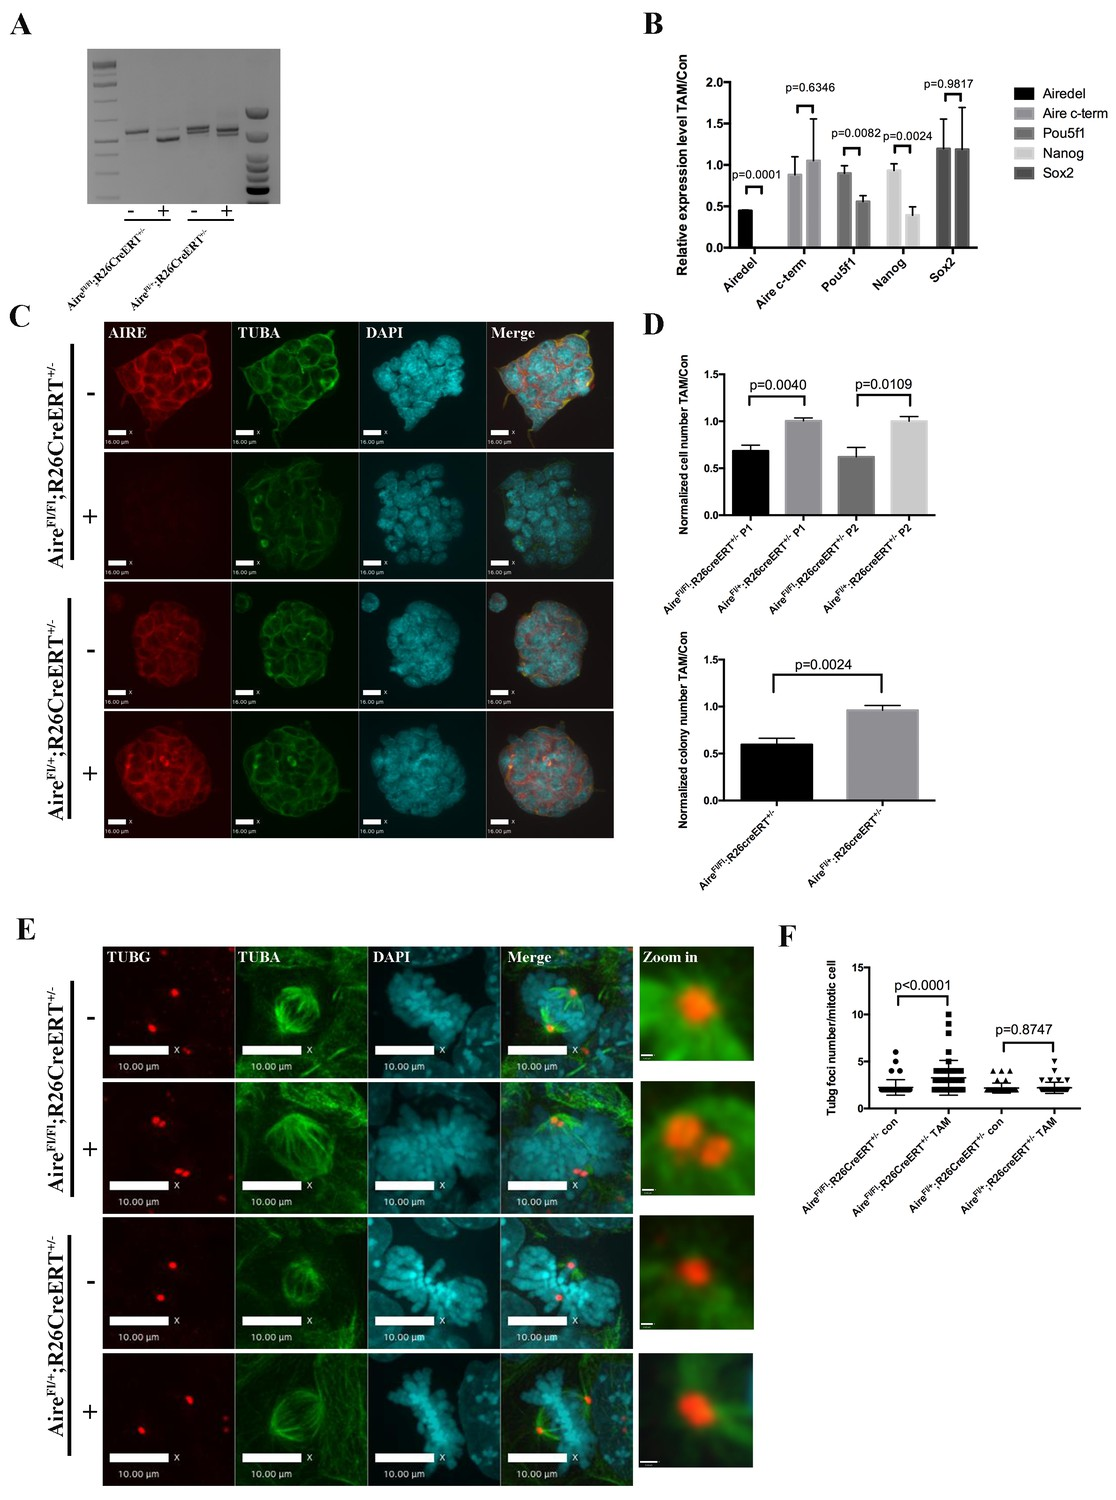 AIRE is a critical spindle-associated protein in embryonic